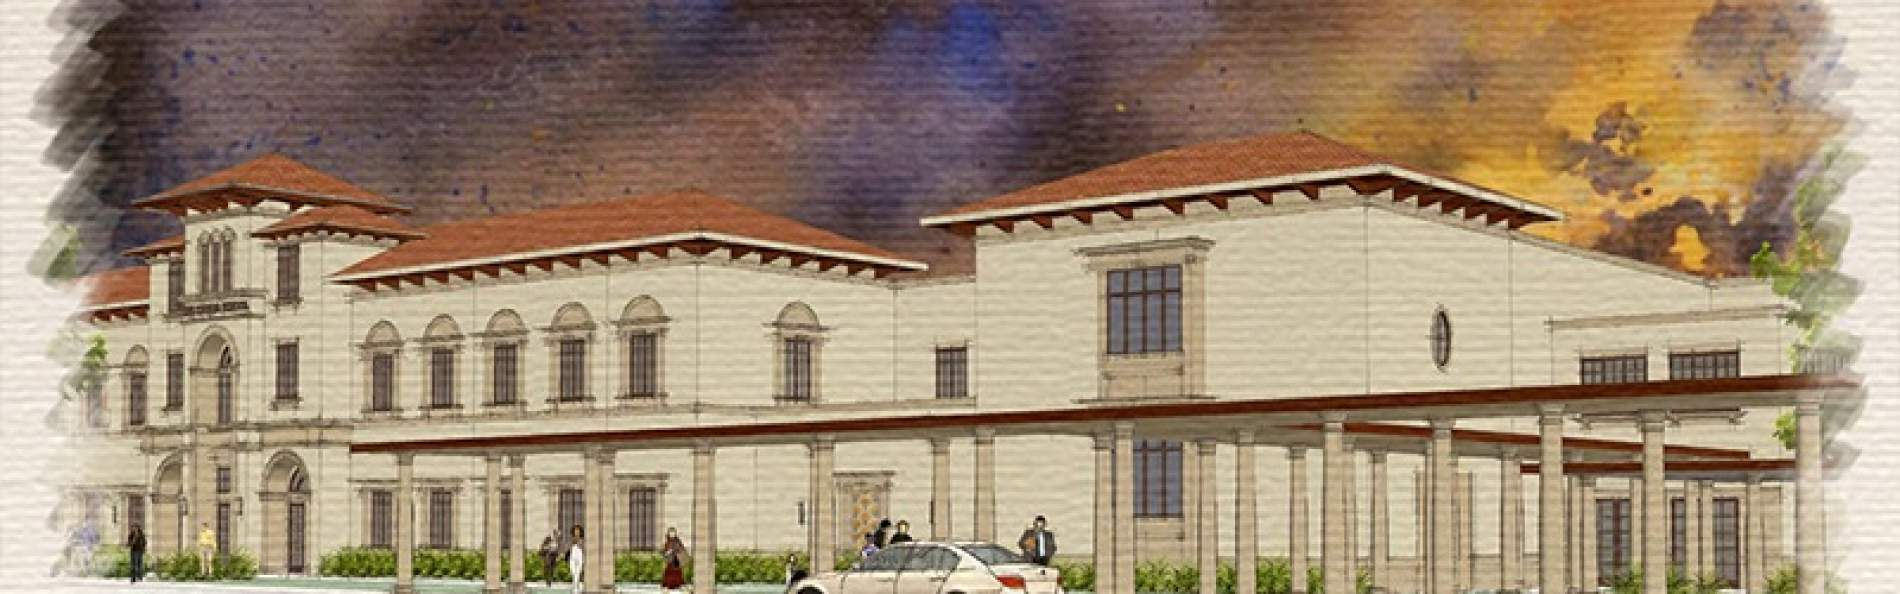 Exterior rendering by Clacny & Theys Construction Company